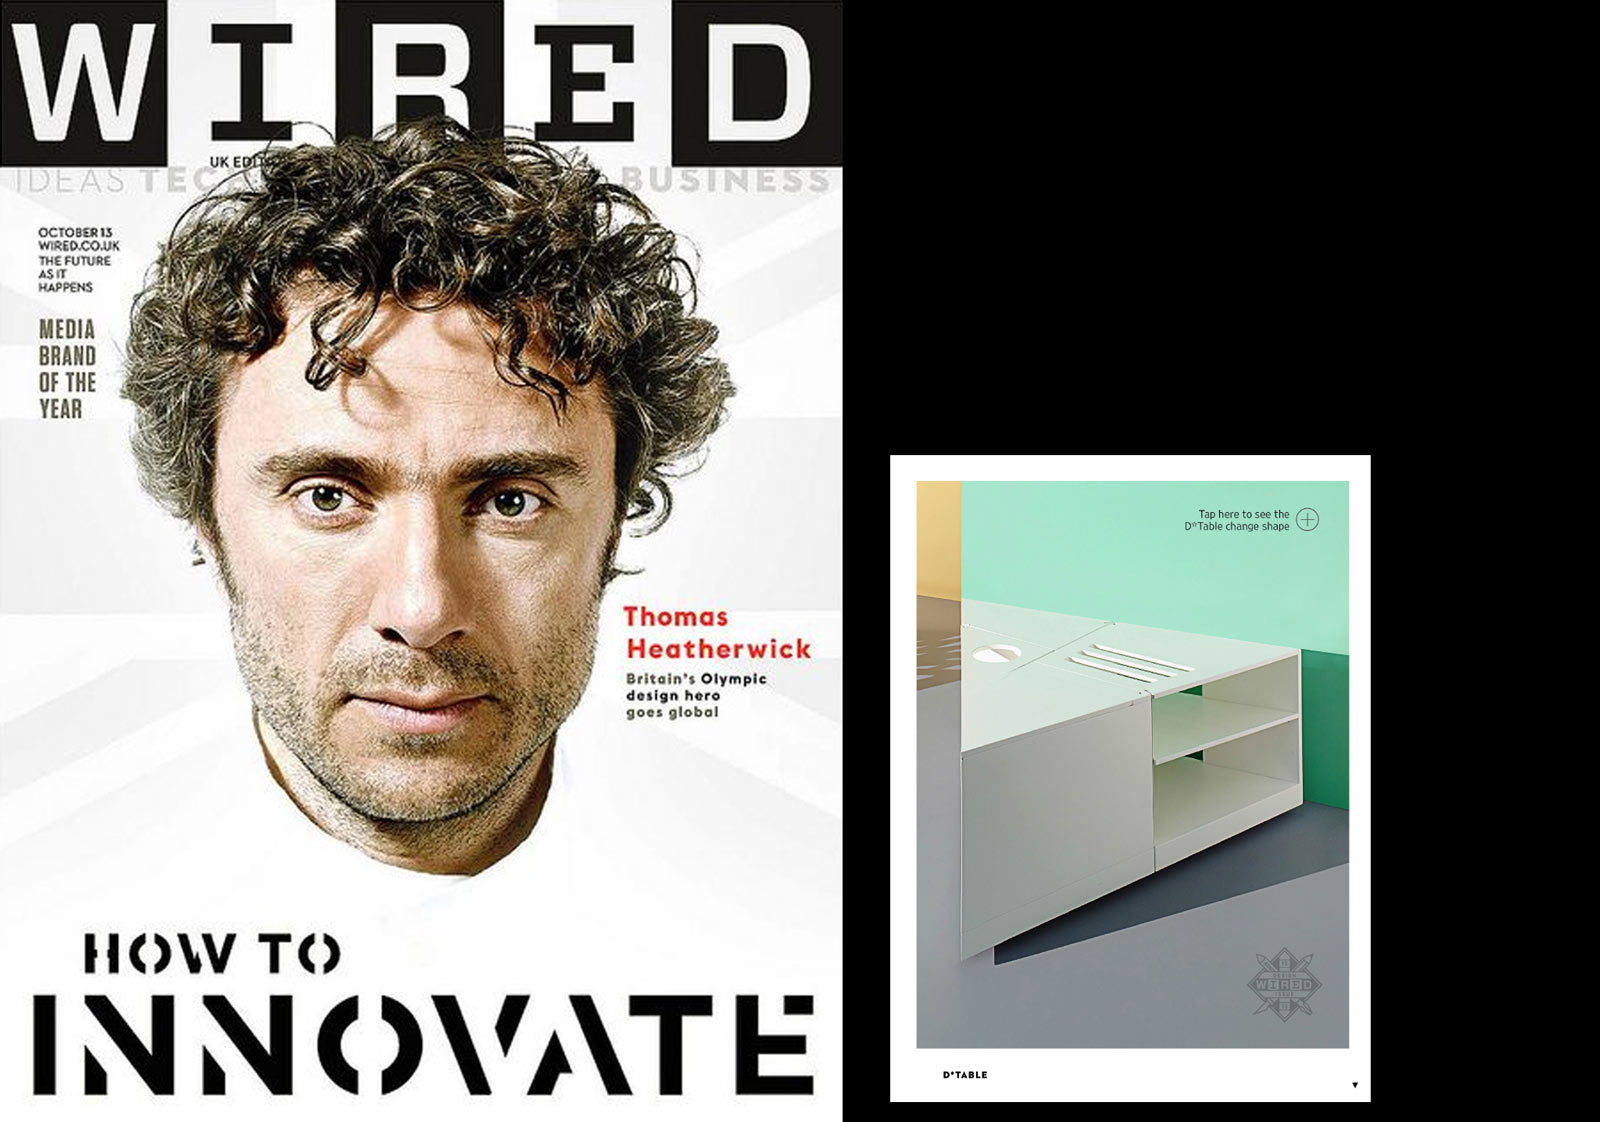 Wired Magazine – The D*Haus Company